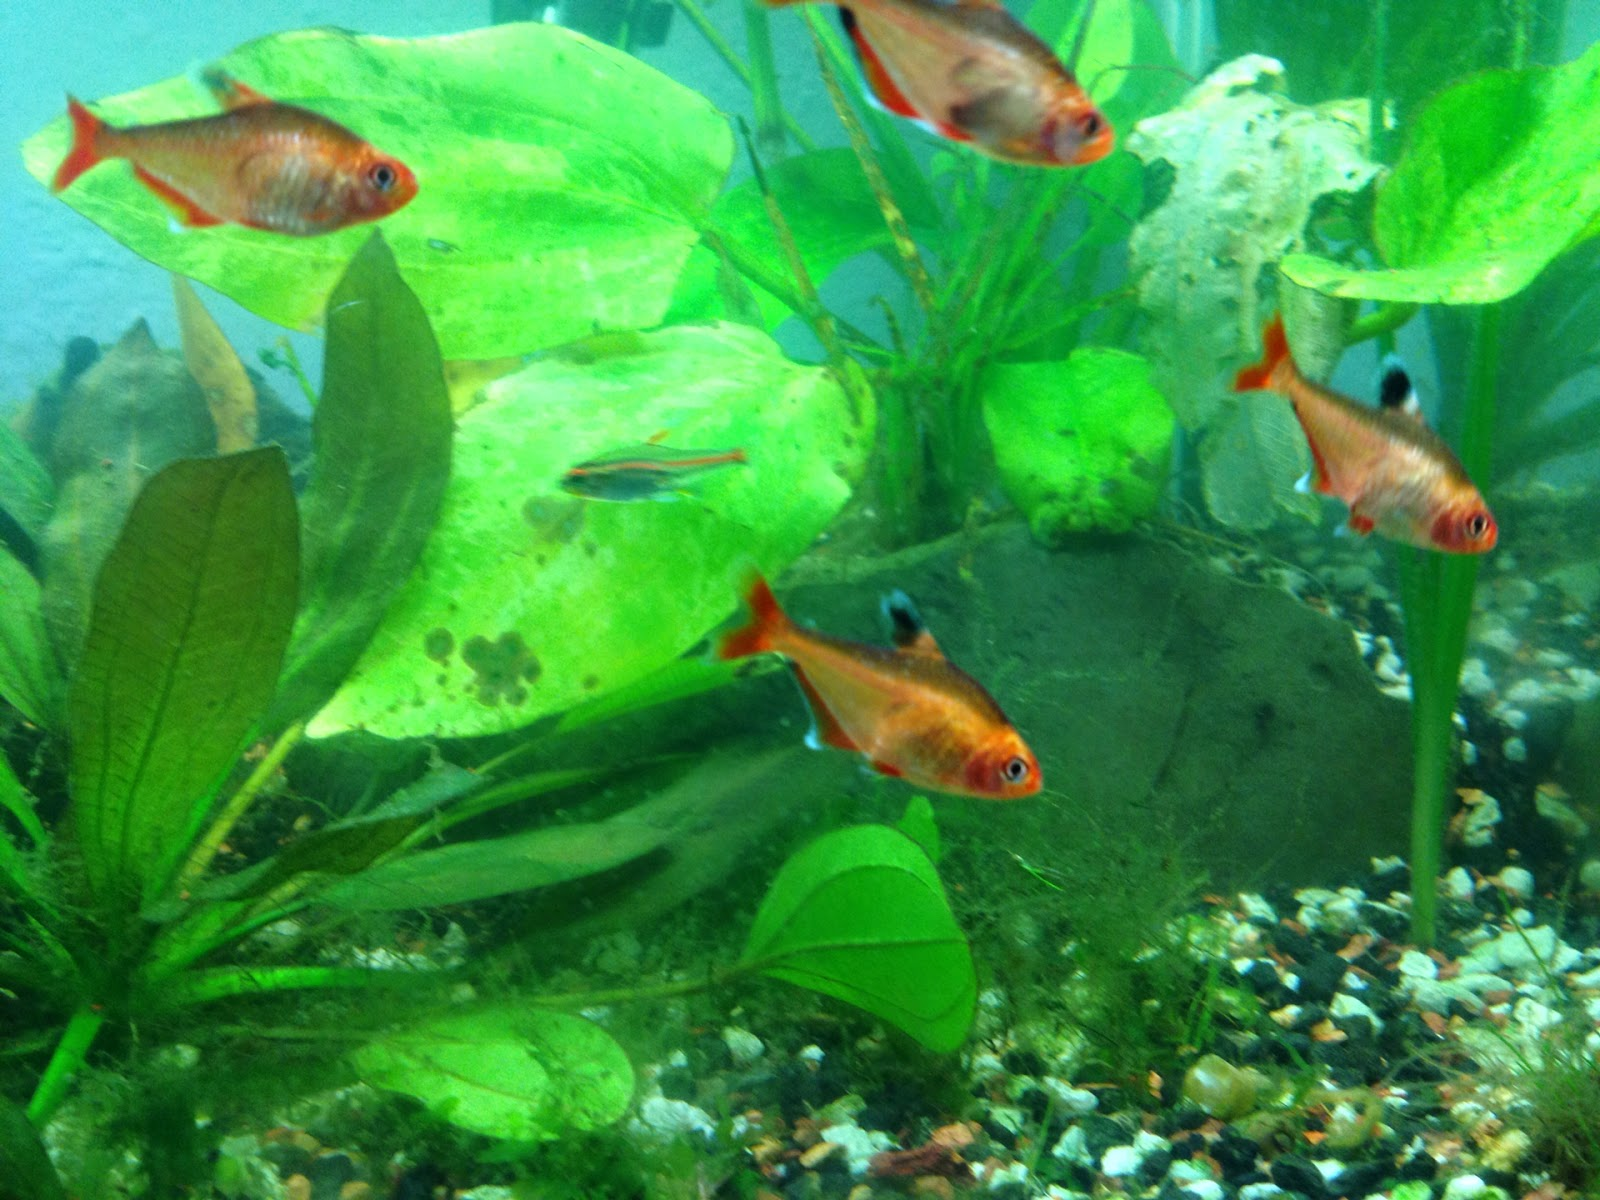 Fish aquarium red spots - Note The Black Dorsal Fin Edged With White The Front End Of The Dorsal Fin Can Also Be White Or Red The Anal Fins Are Also White Edged With A Black Dot